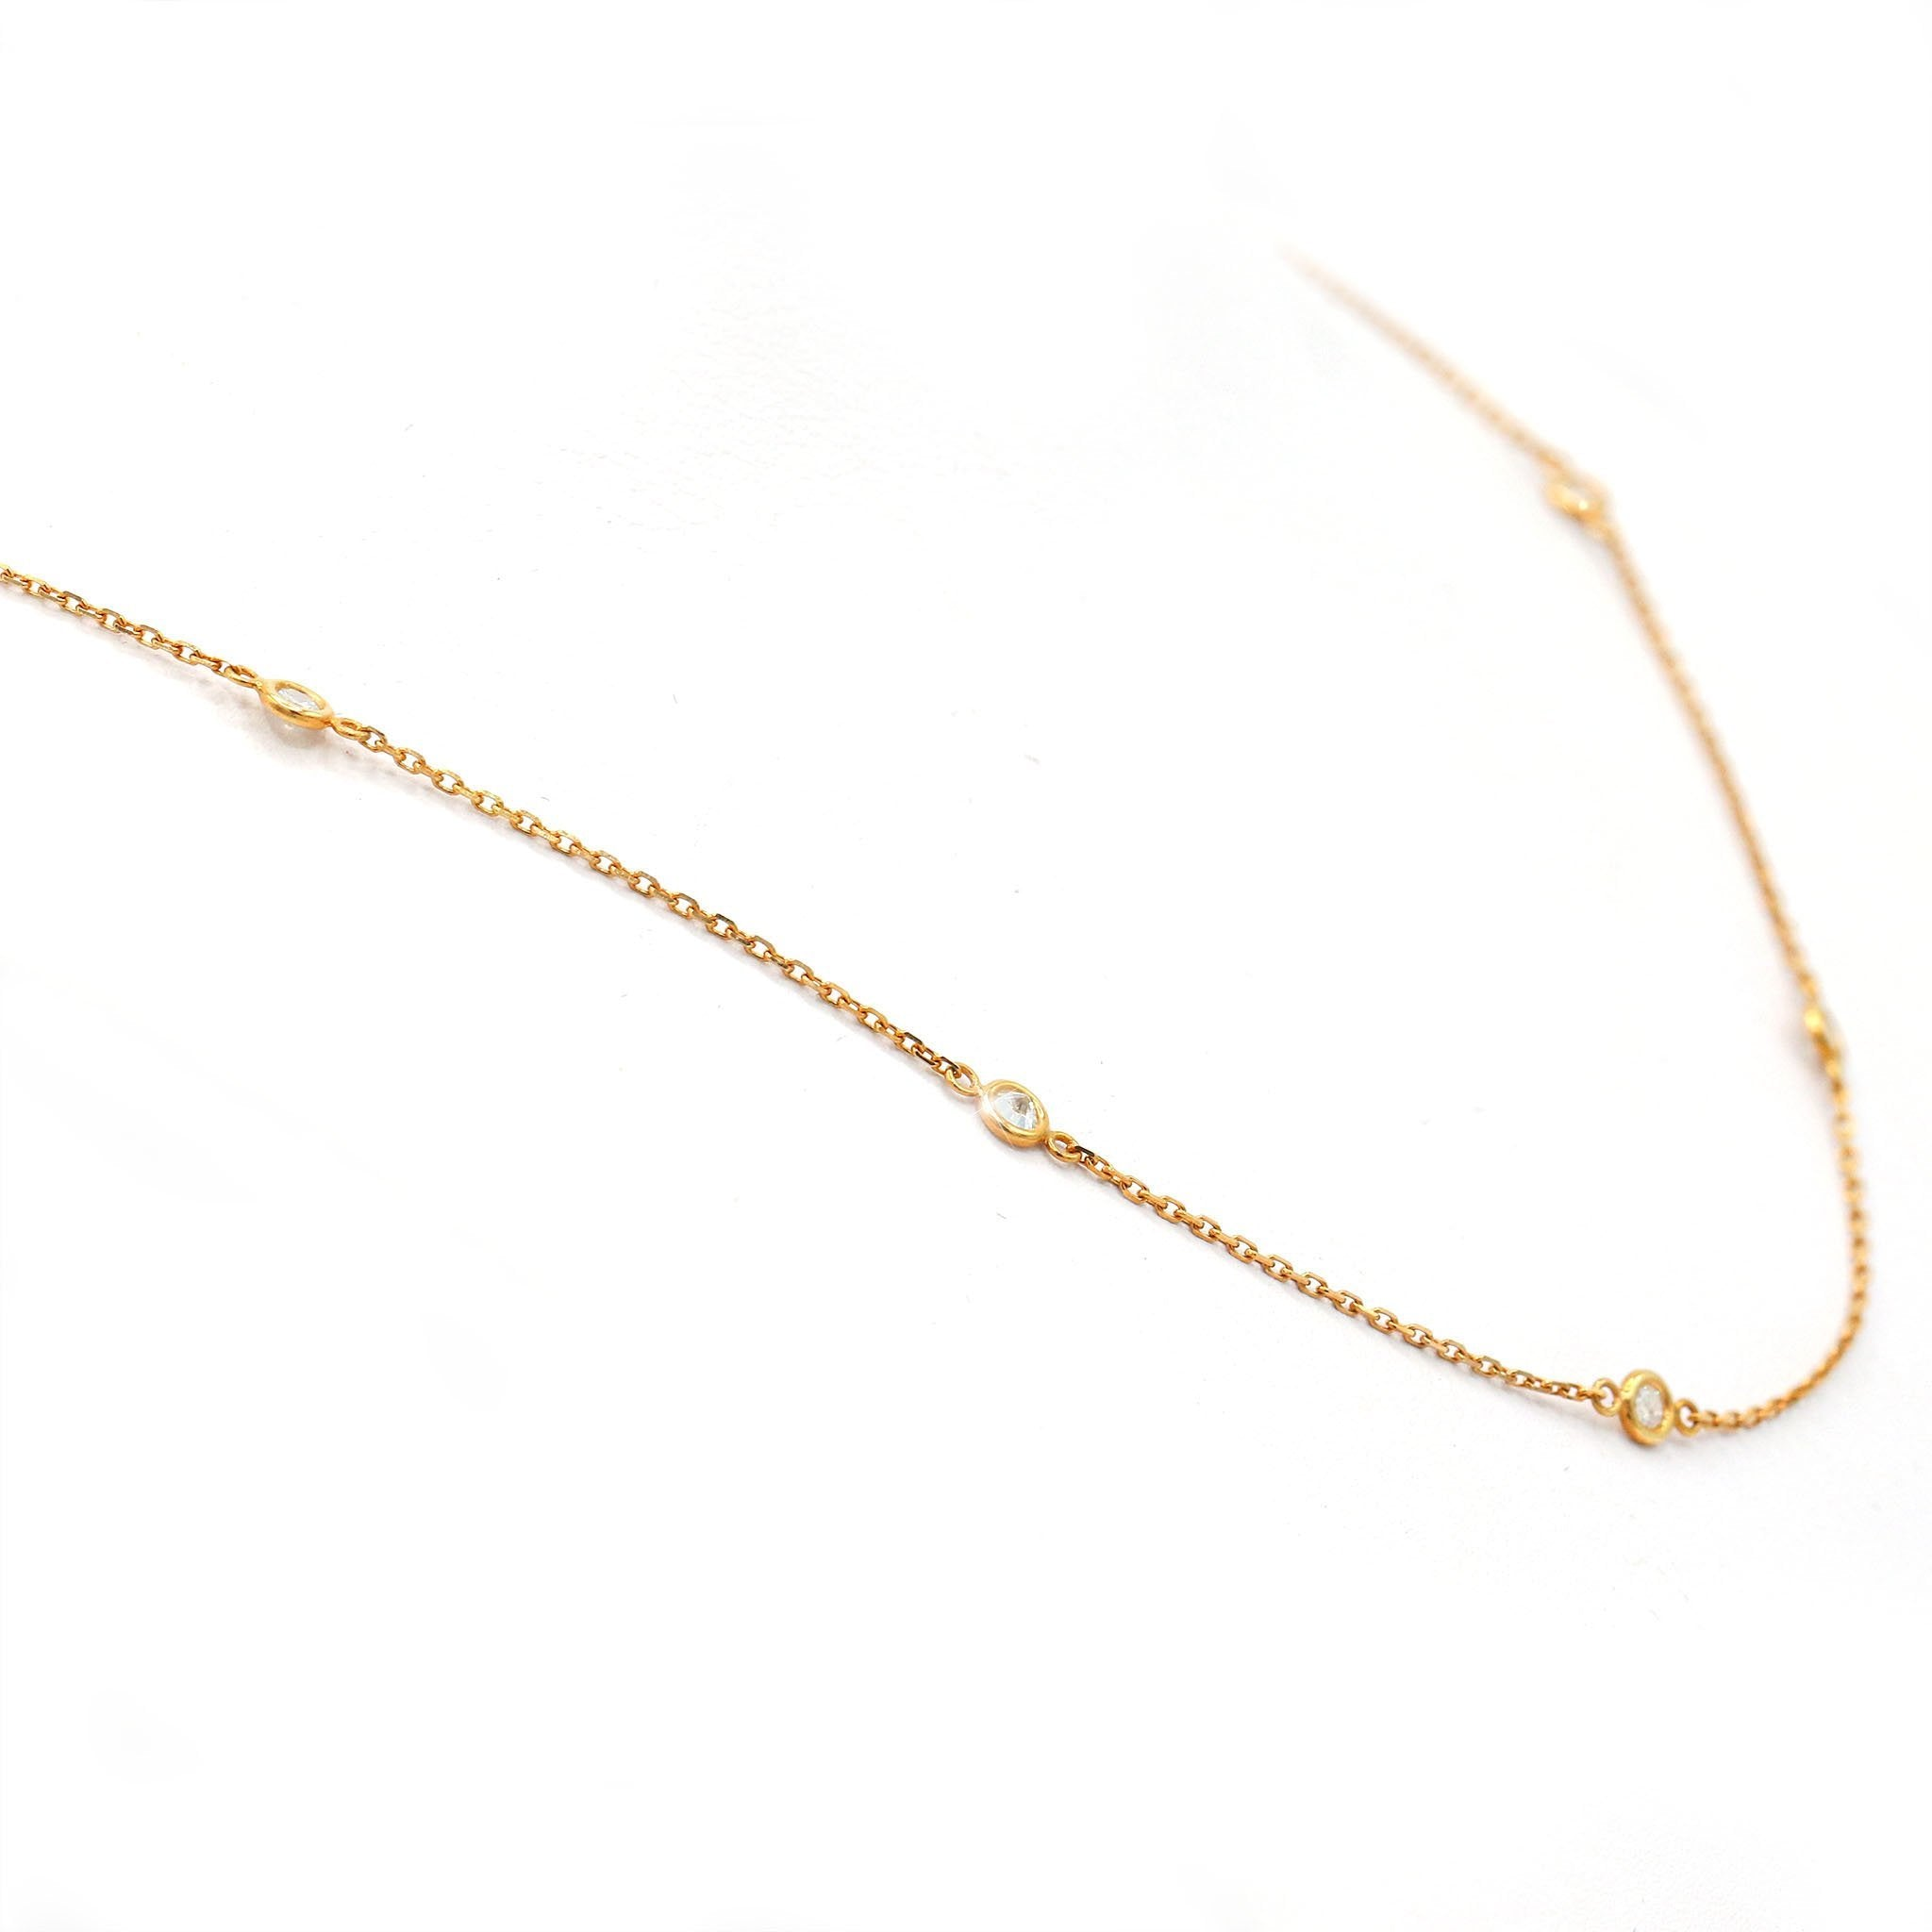 Captivating 14K Yellow Gold Diamond By The Yard Necklace (0.50ct Carat Diamond Weight)